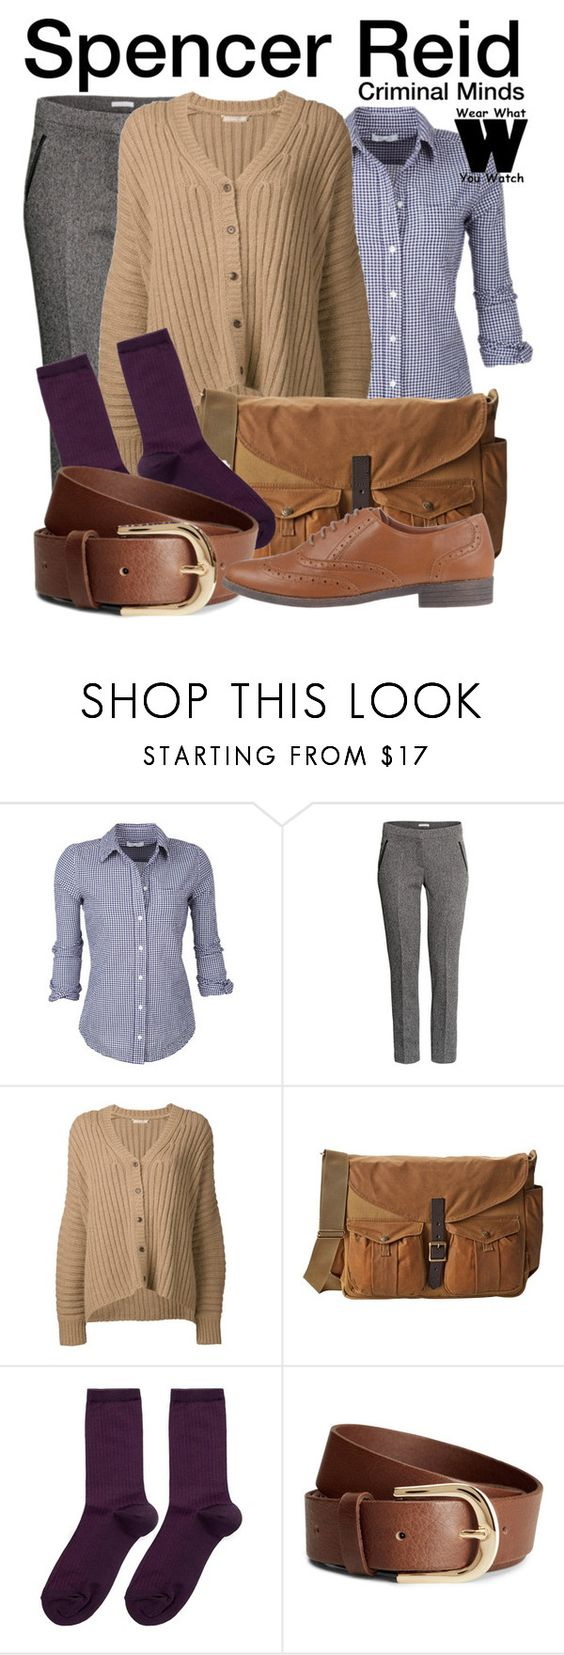 """""""Criminal Minds"""" by wearwhatyouwatch ❤ liked on Polyvore featuring H&M, Michael Kors, Filson, Hansel from Basel, River Island, television and wearwhatyouwatch"""